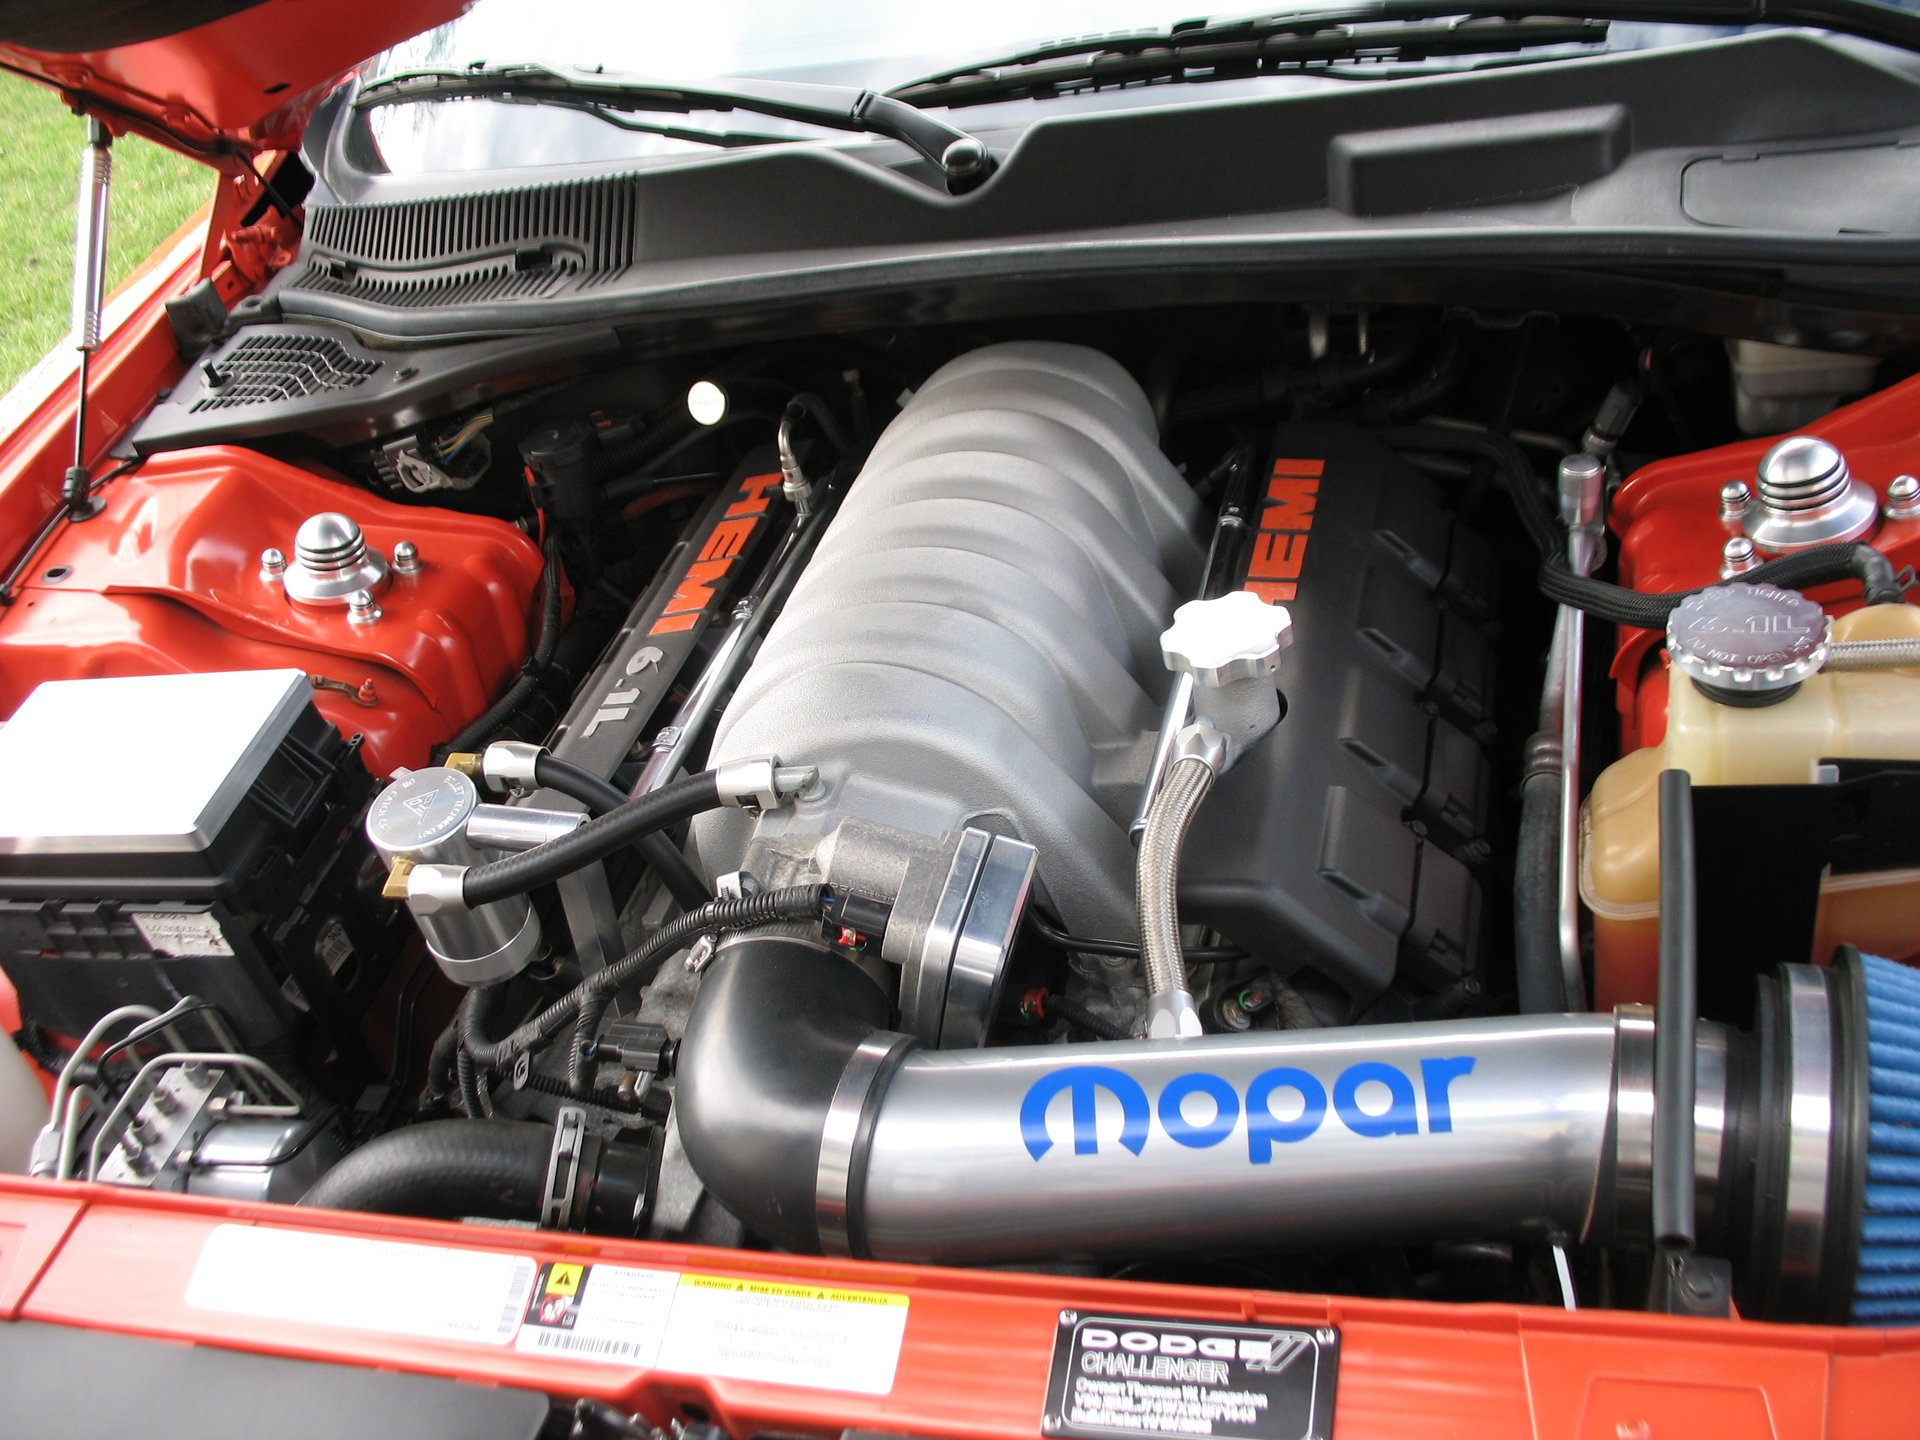 Showcase cover image for 6.1 Hemi with Billet engine bay mods.